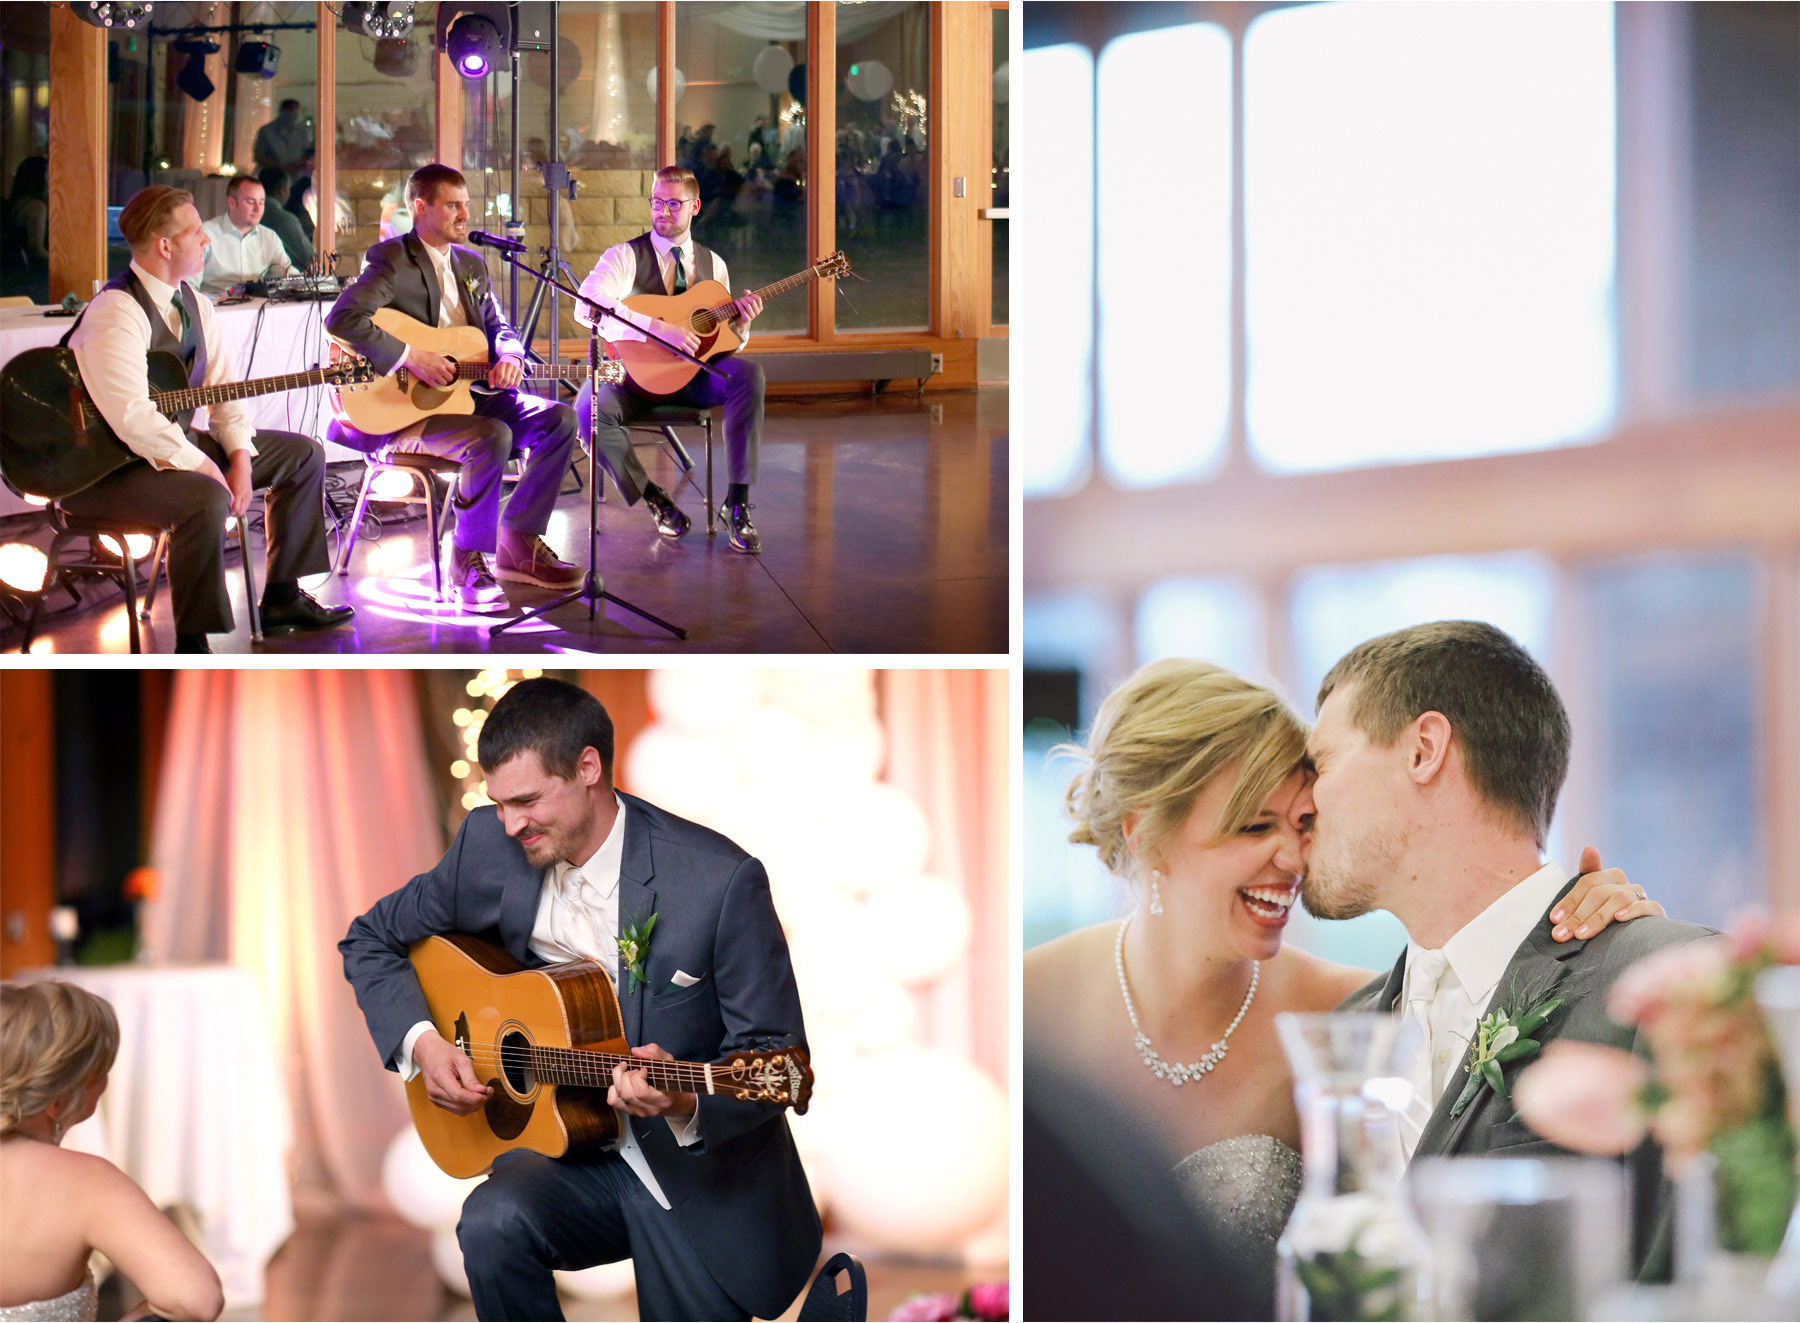 14-Minneapolis-Wedding-Photography-by-Vick-Photography-Vadnais-Heights-Commons-Reception-Kasie-and-Joshua.jpg